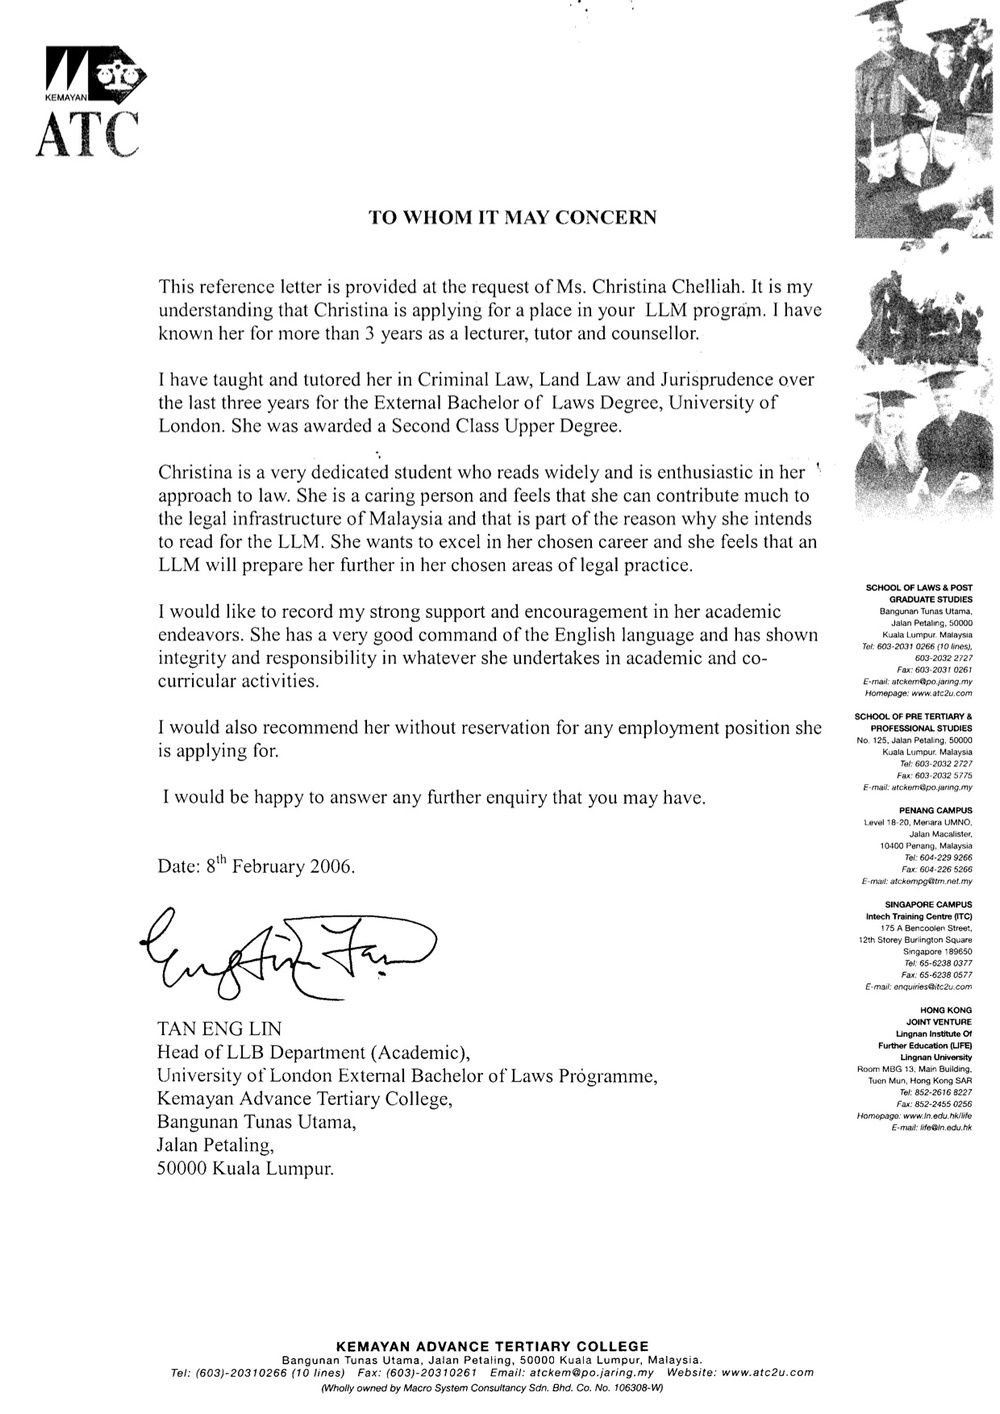 2006 - Teaching - ATC Reference Letter.jpg